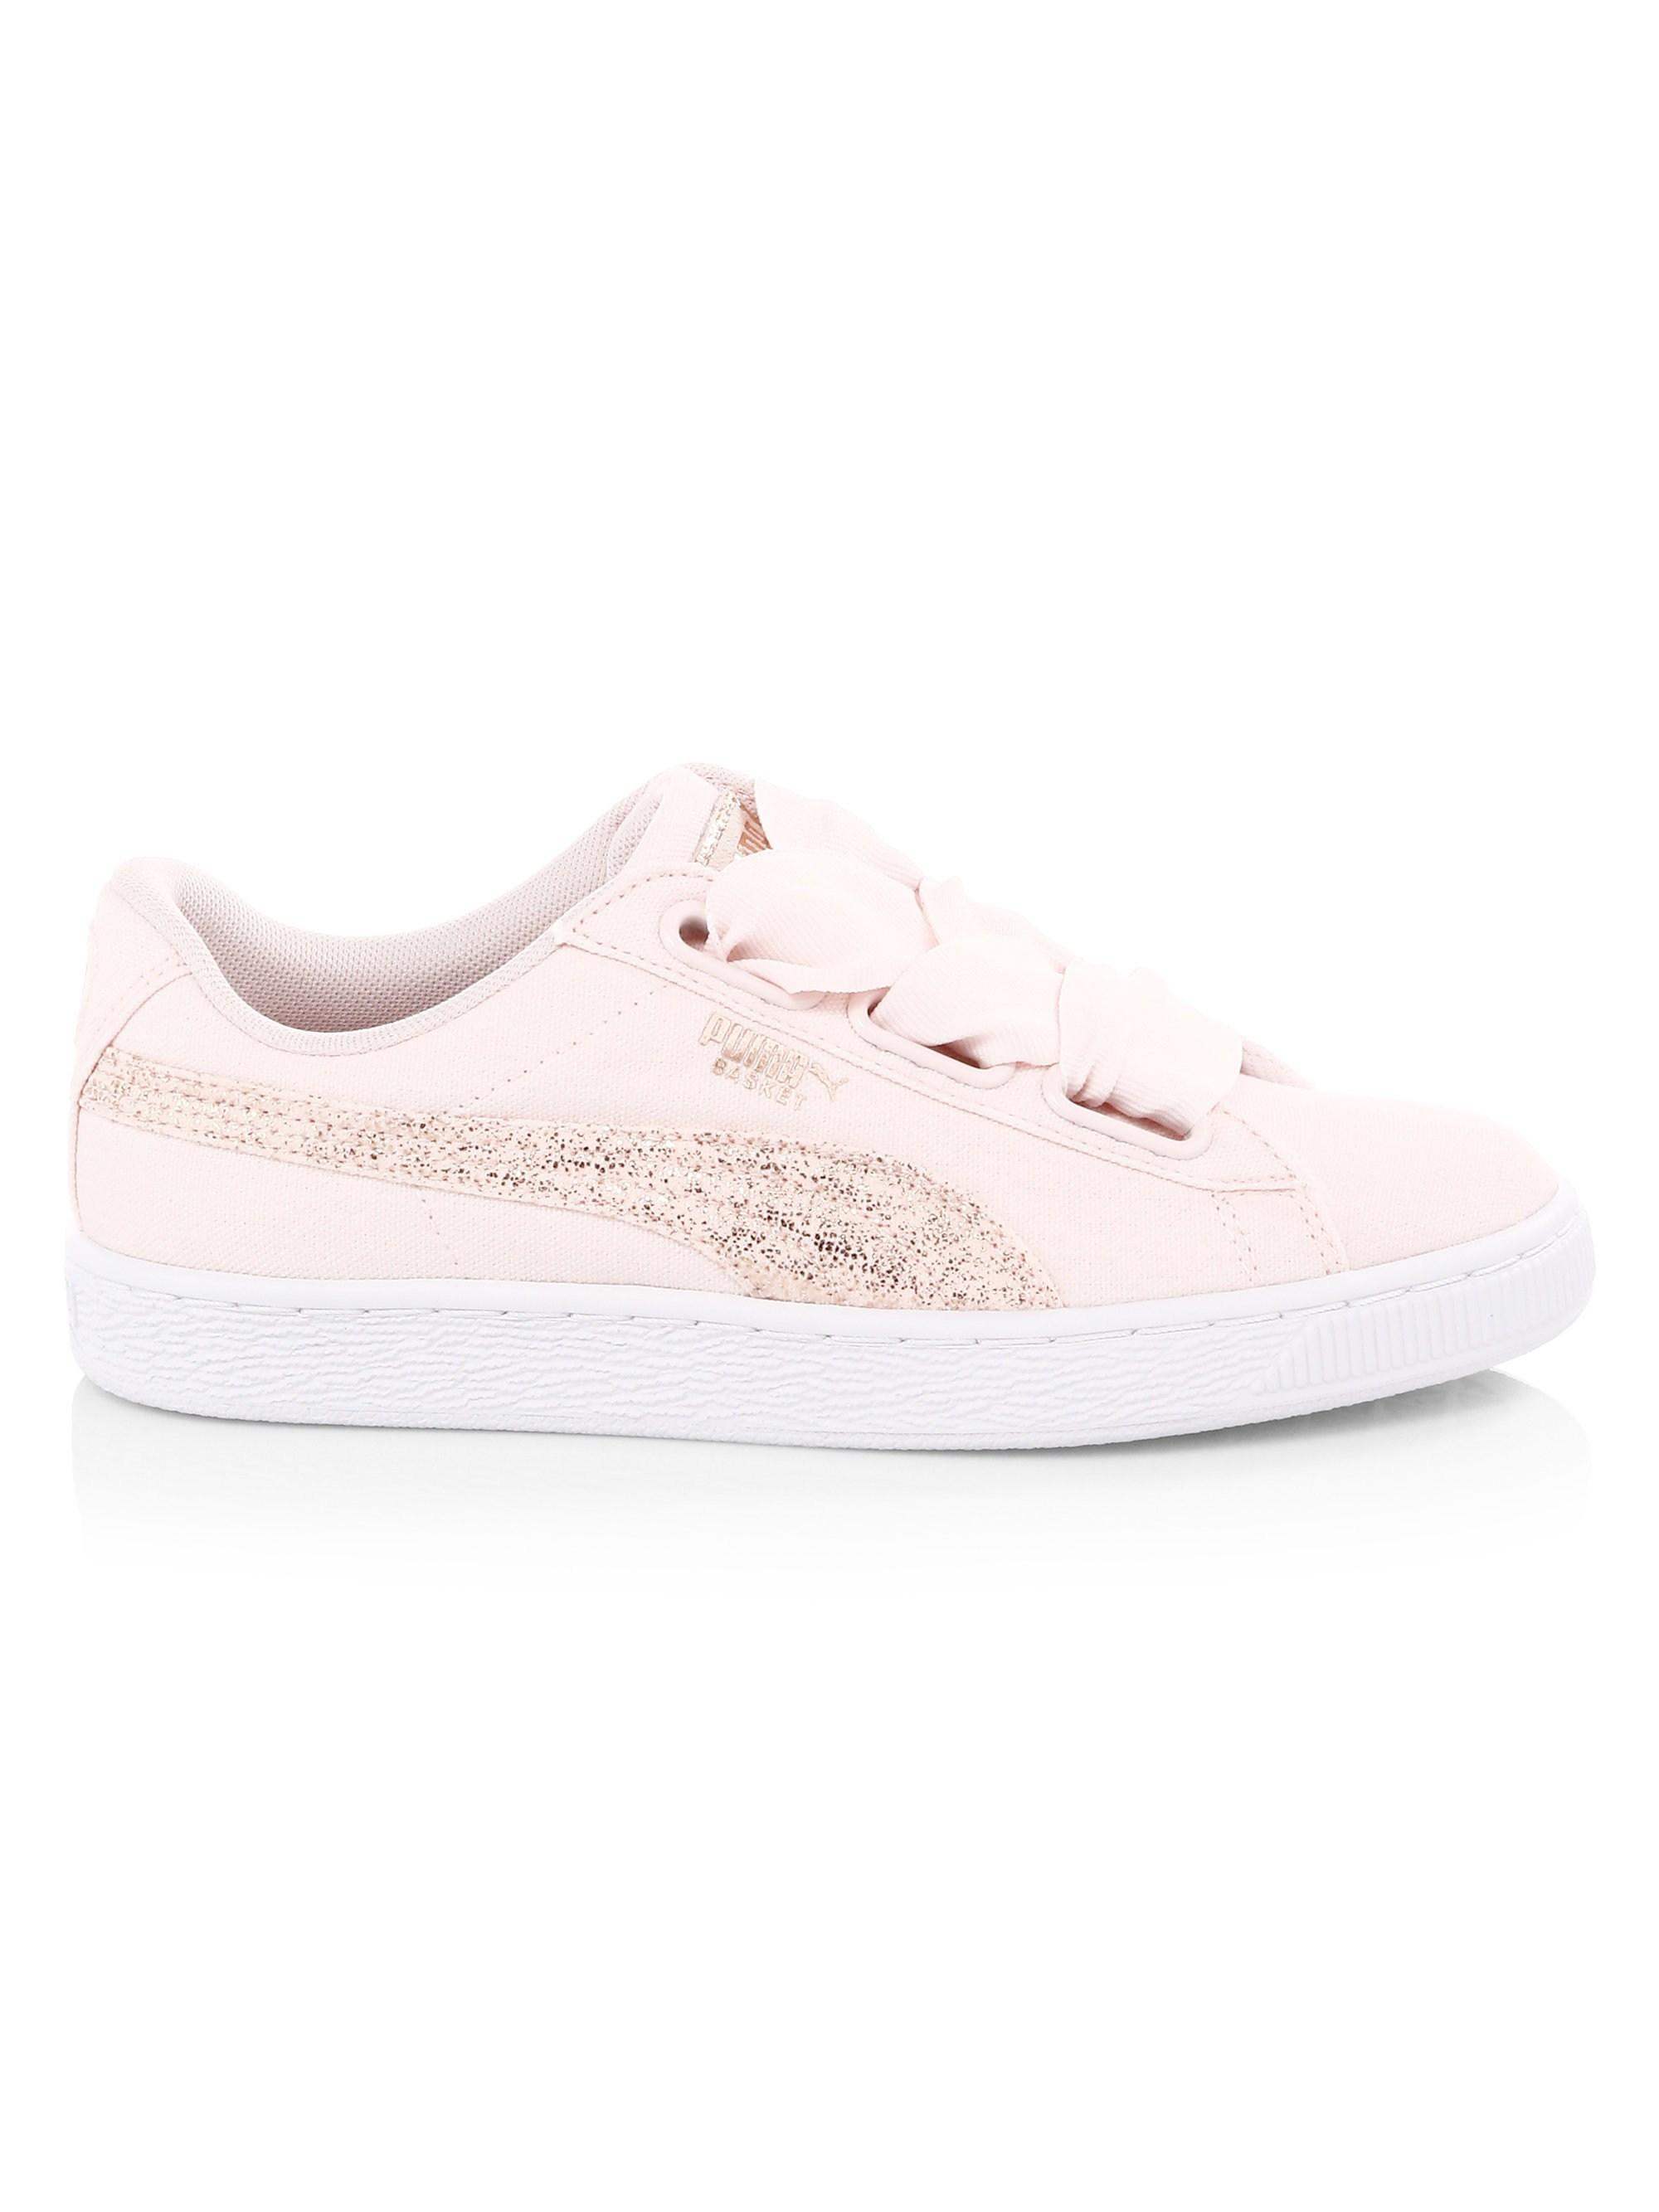 save off 052de 8fc48 Lyst - PUMA Basket Heart Canvas Low-top Sneakers in Pink